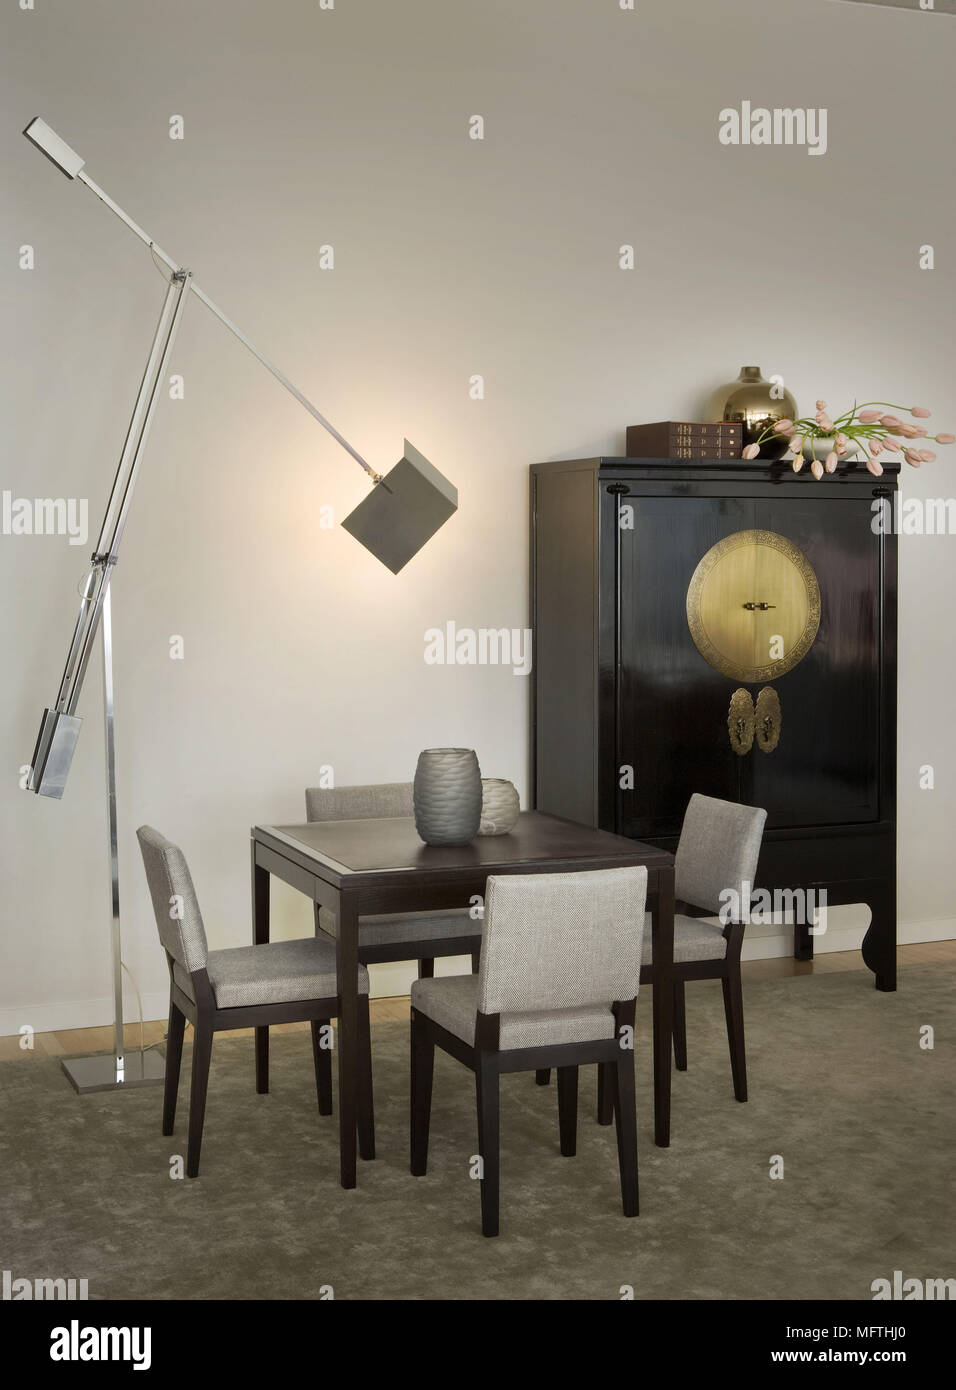 Wooden Table And Upholstered Chairs Next To Chinese Cabinet In Modern Dining Room